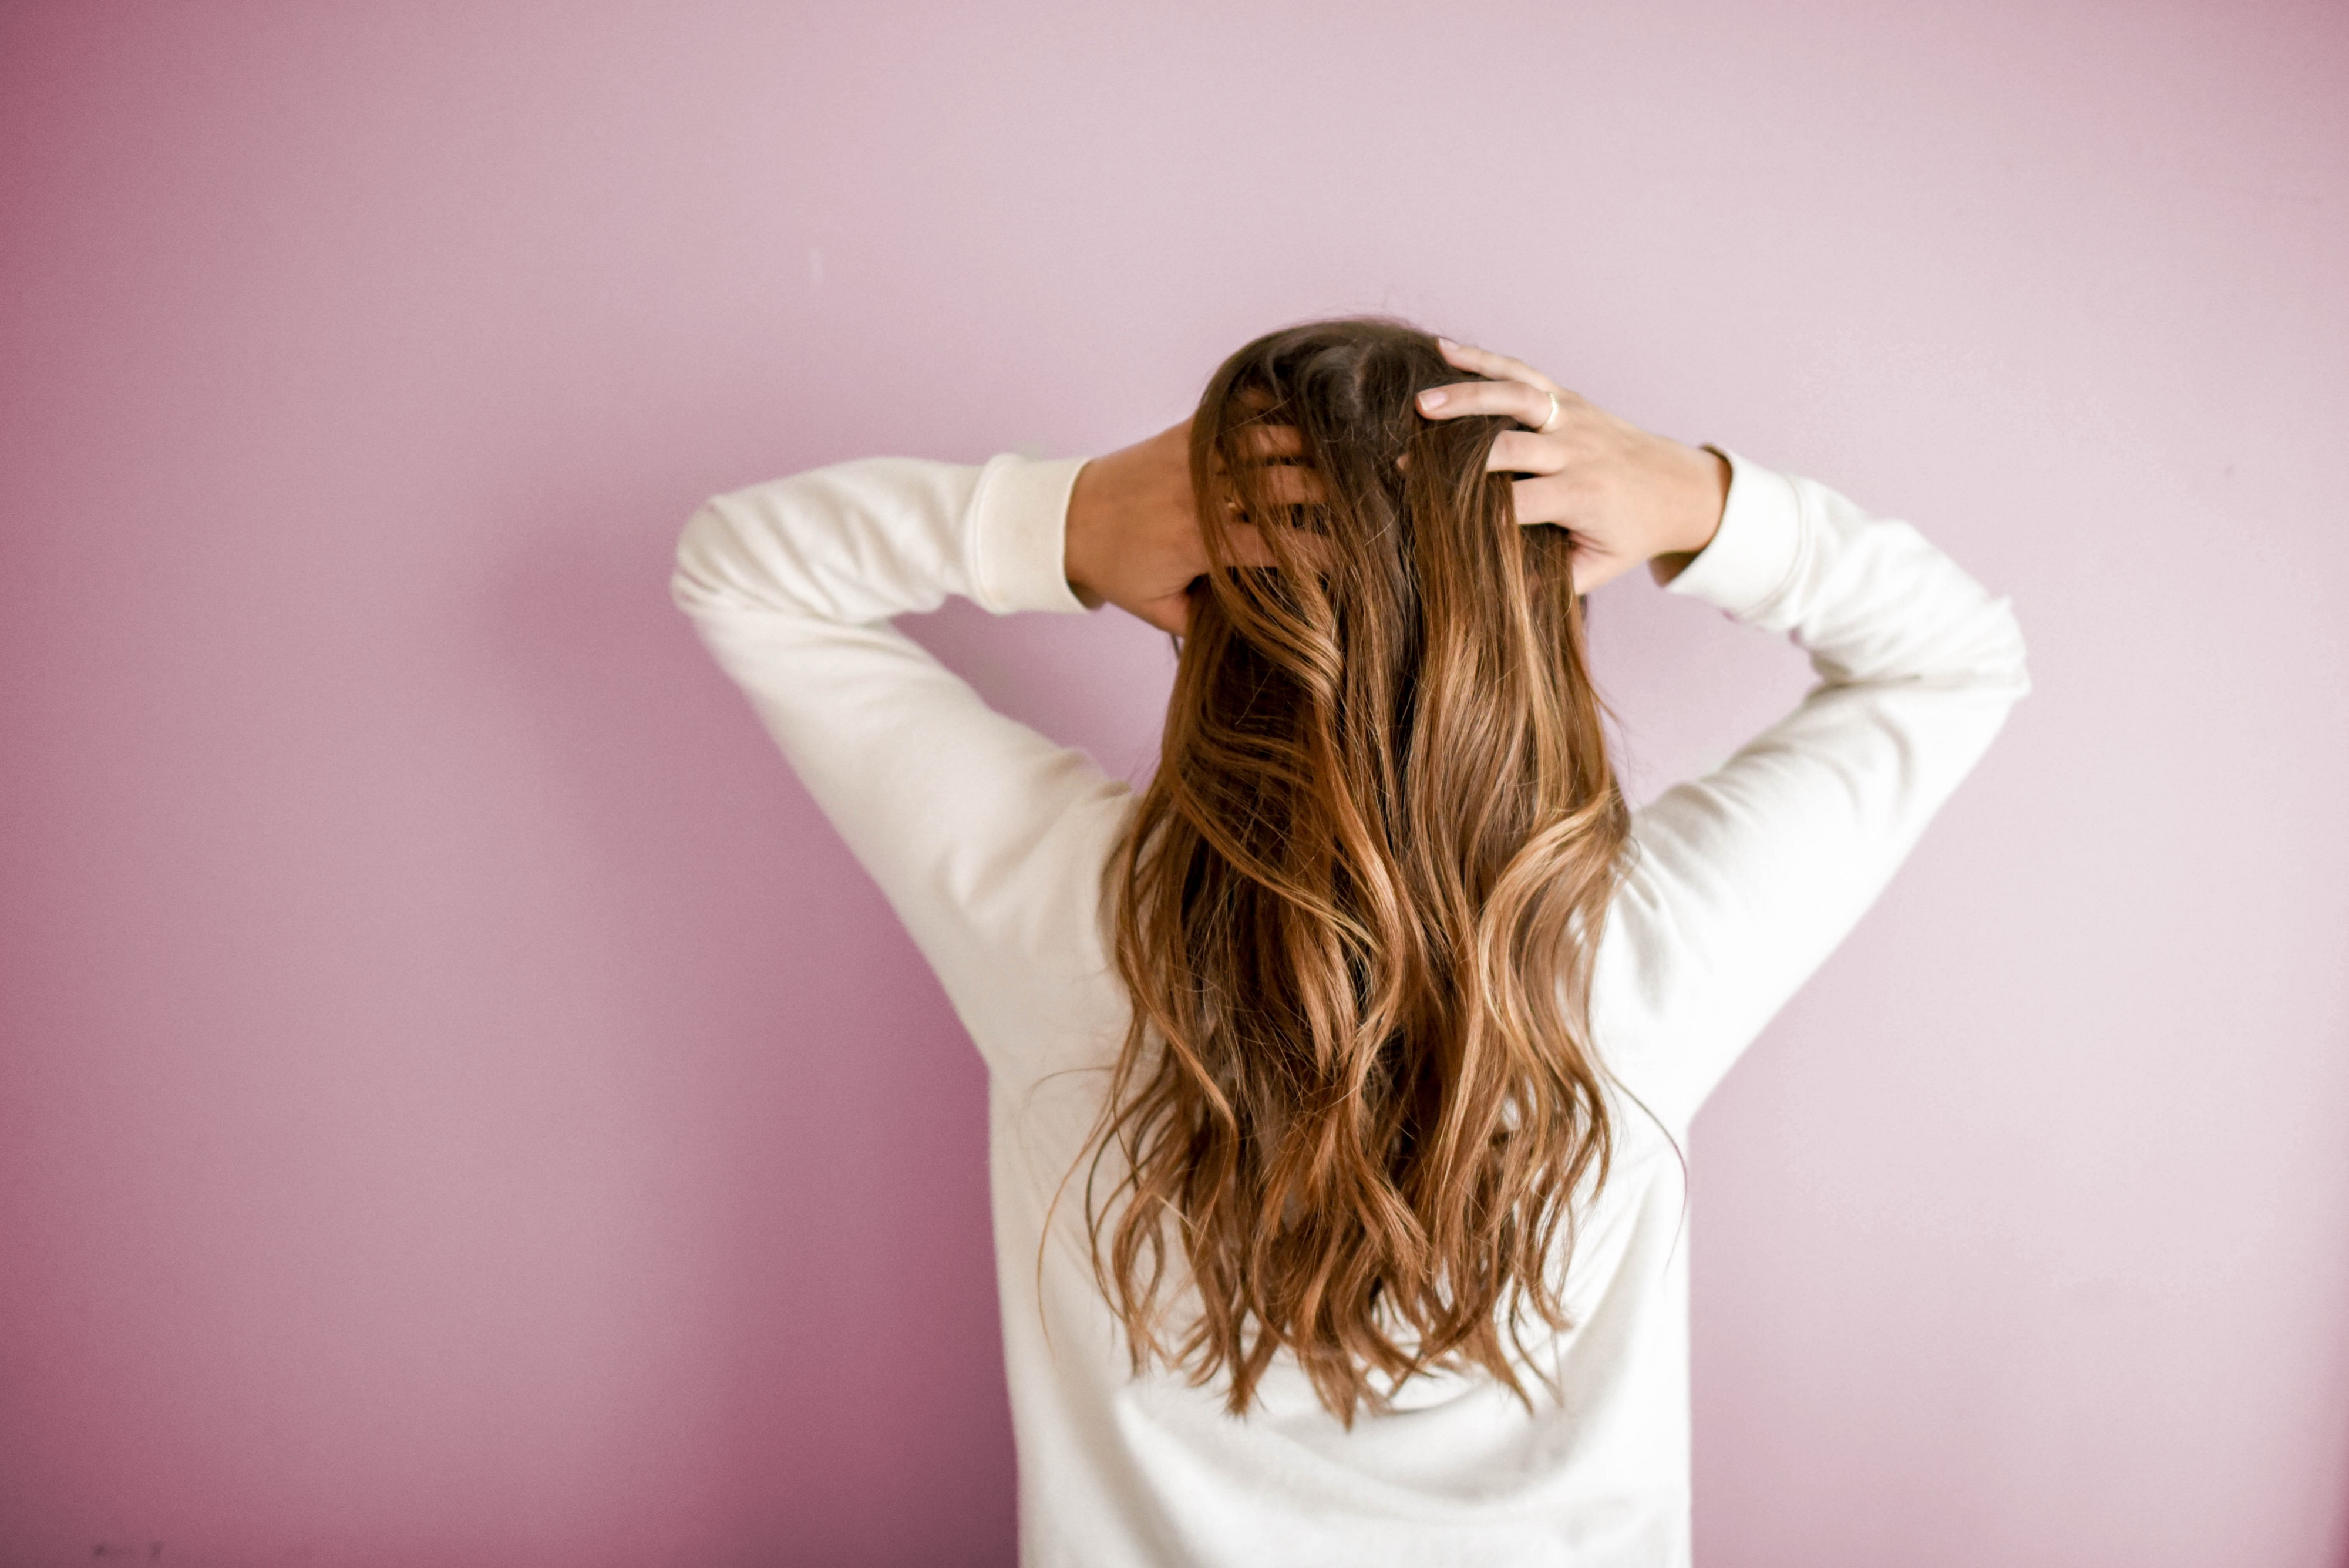 Woman with back to camera grabbing hair in hands